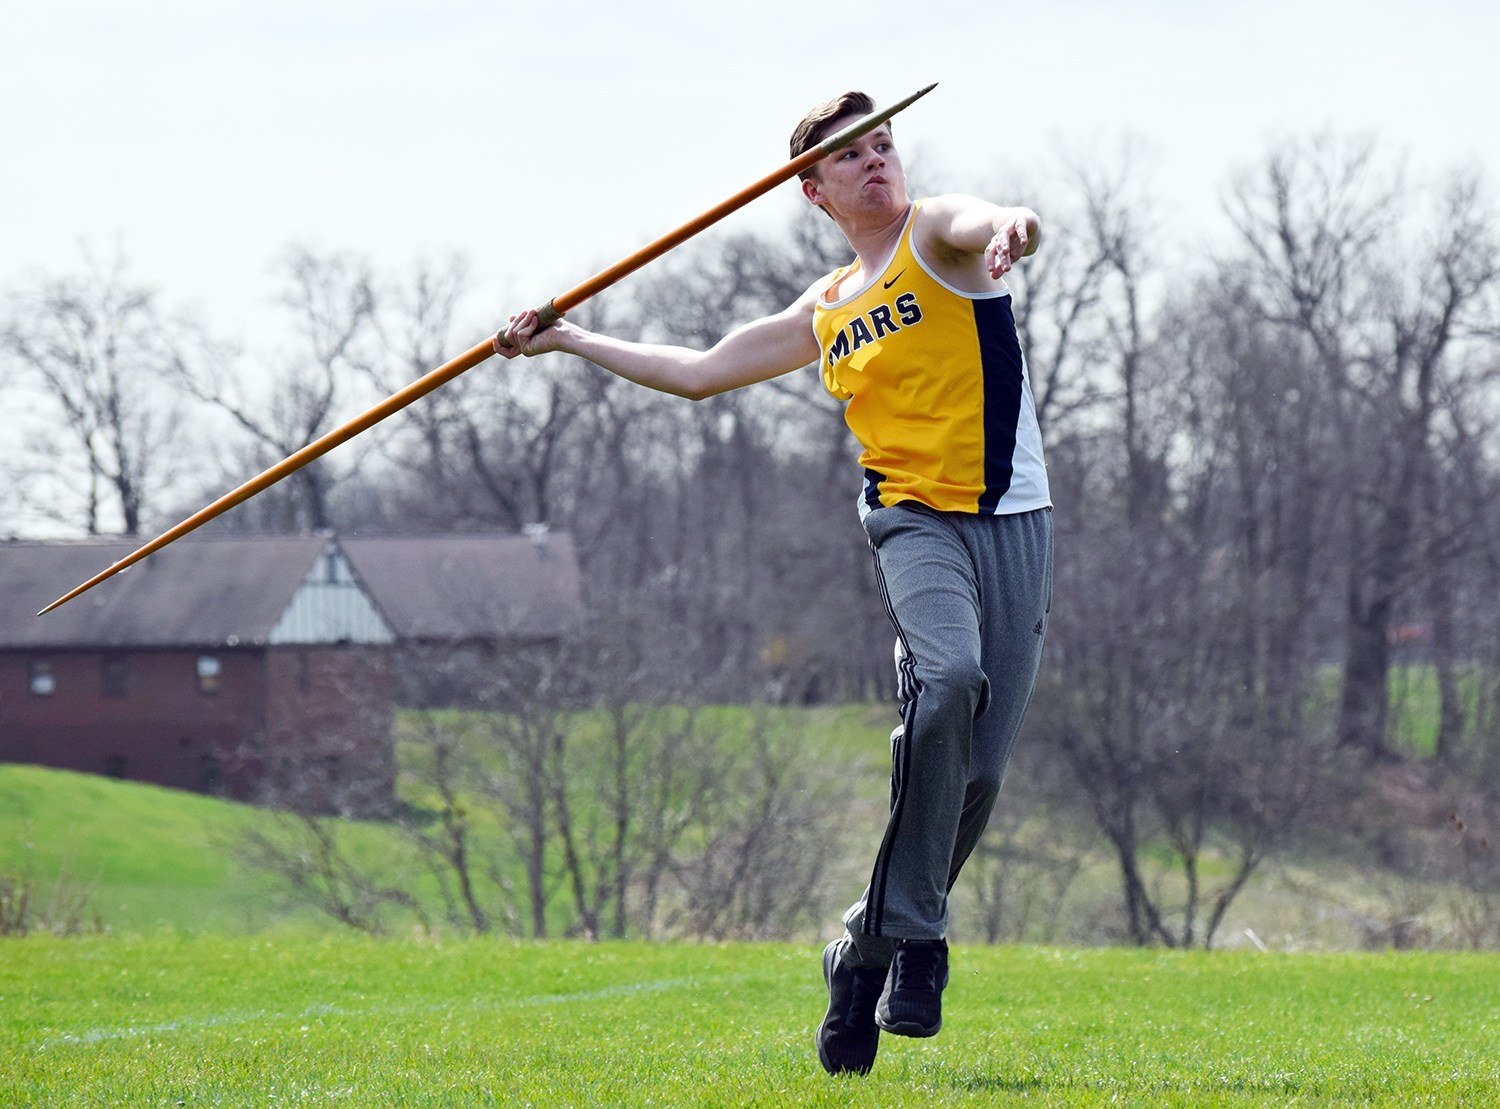 boy throwing javelin